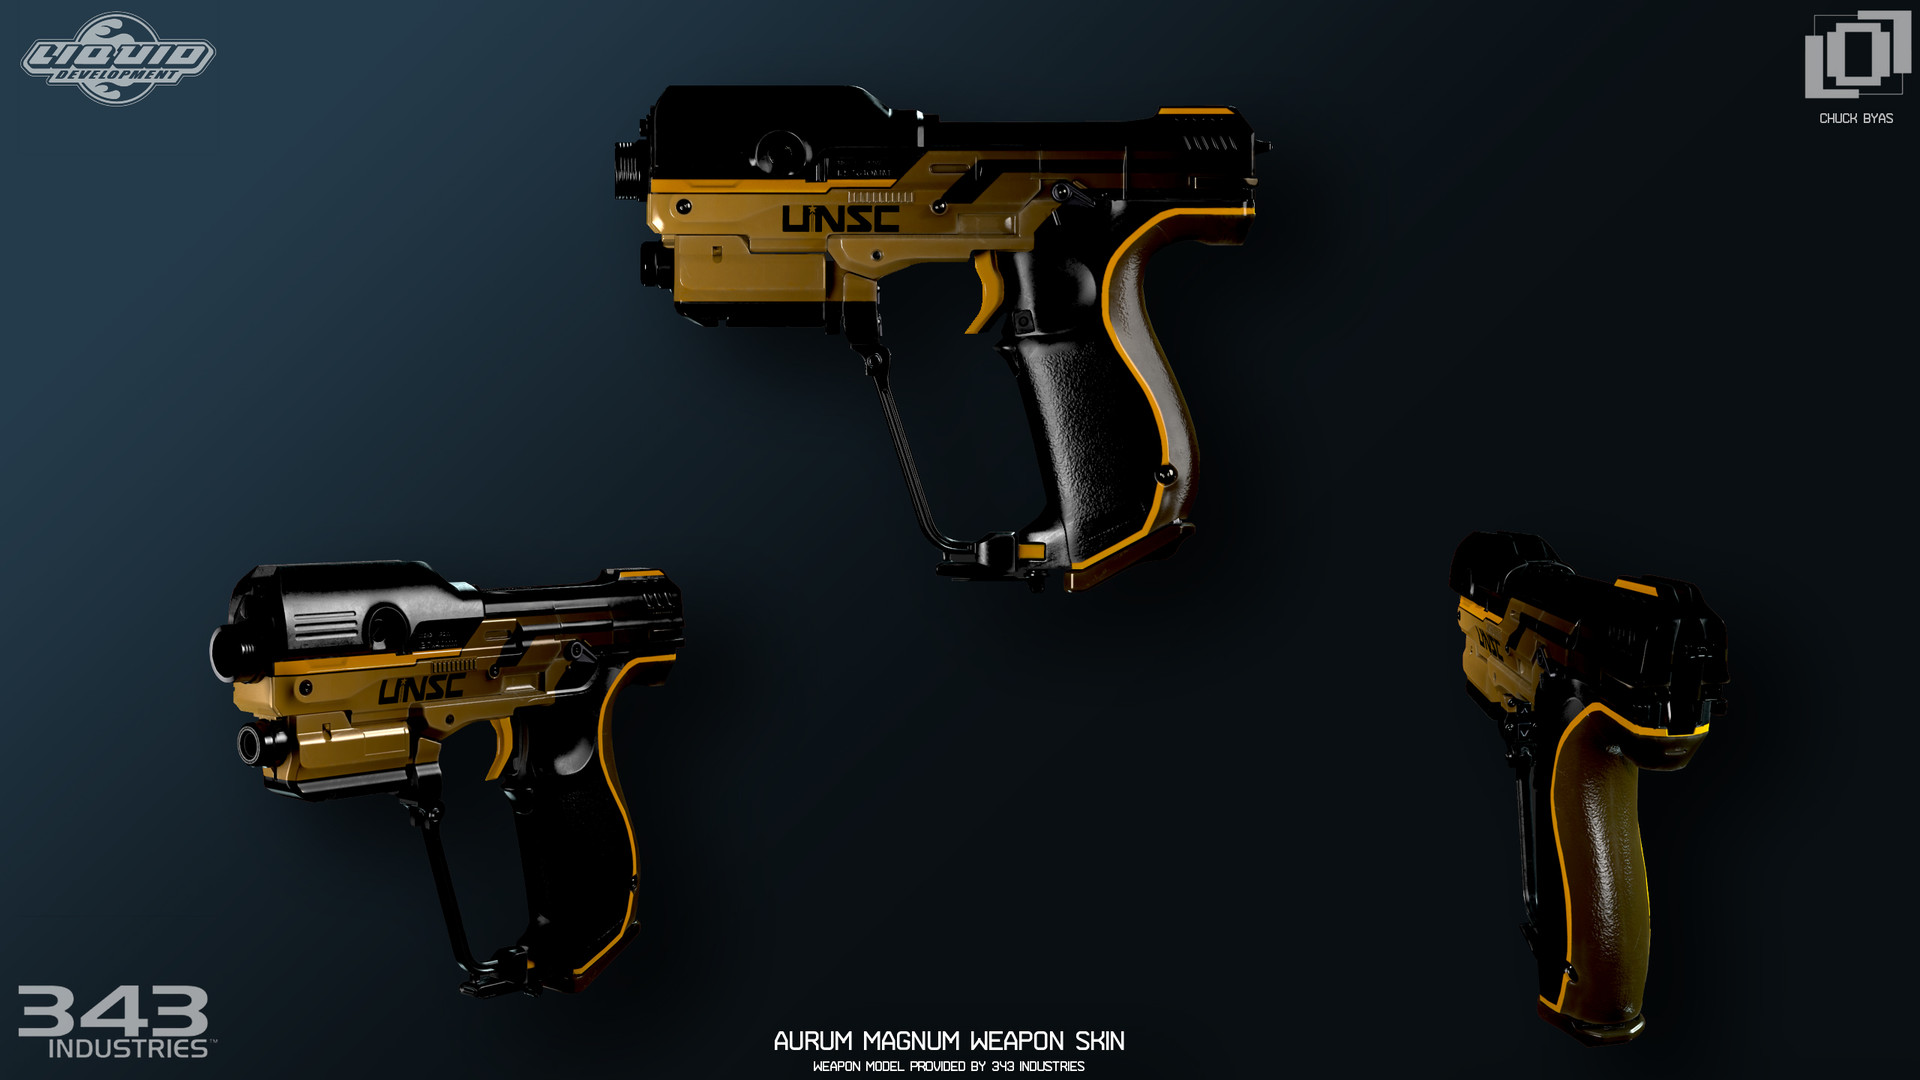 Chuck Byas - Aurum Theme Concepts and Weapon Skins